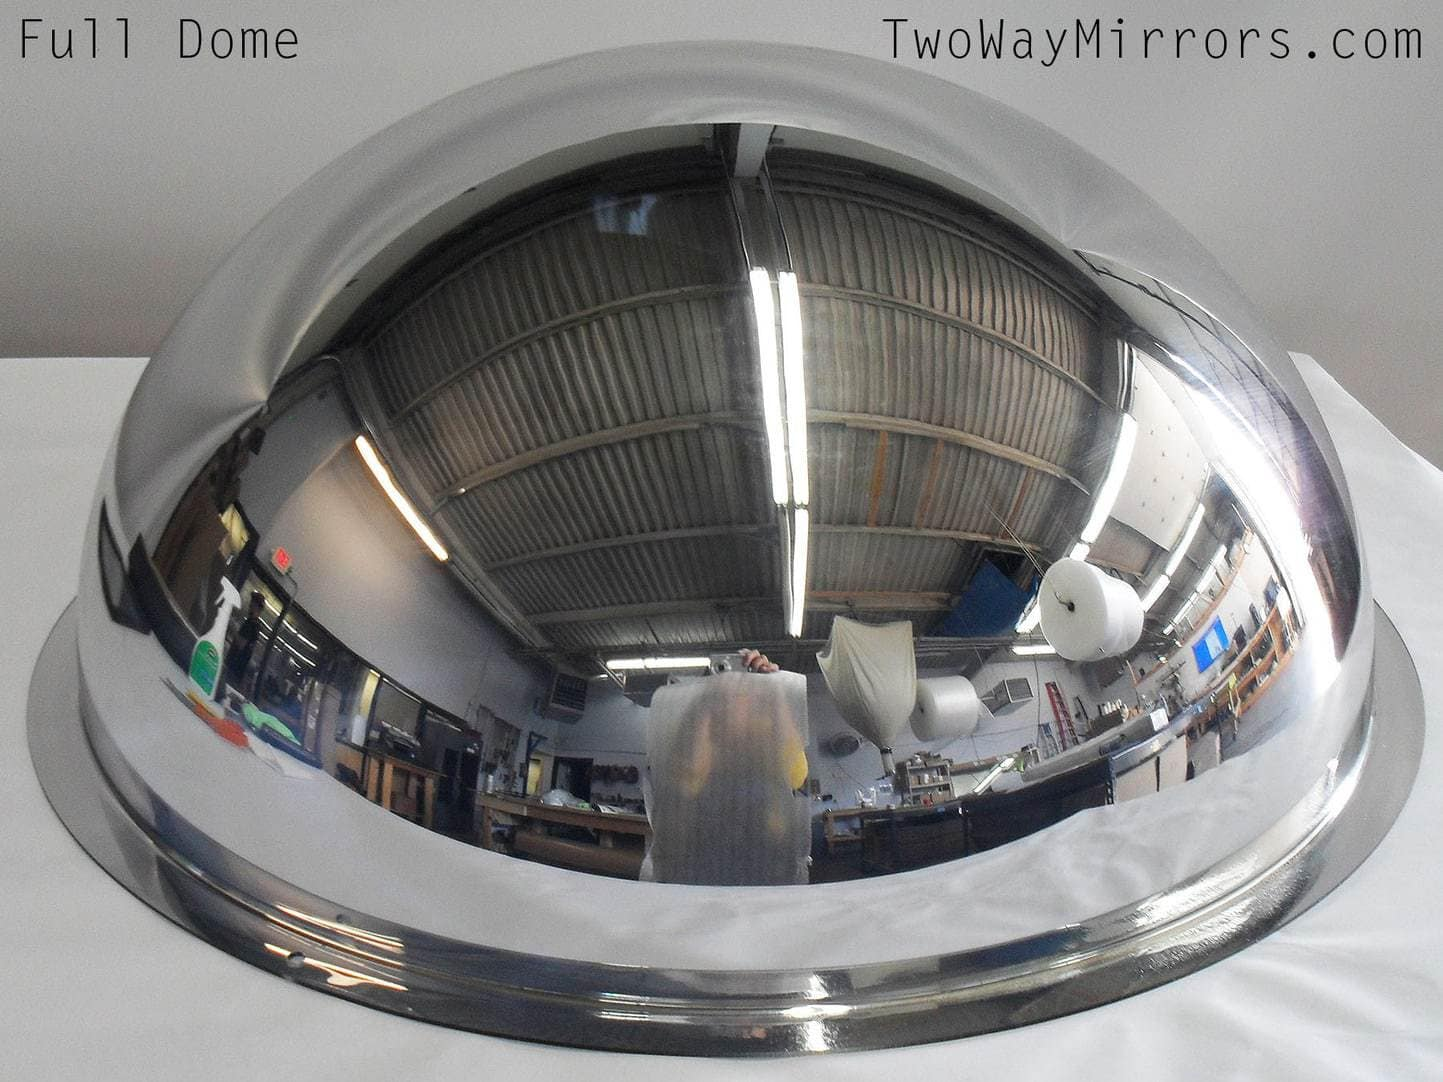 Full Dome Two Way Mirror